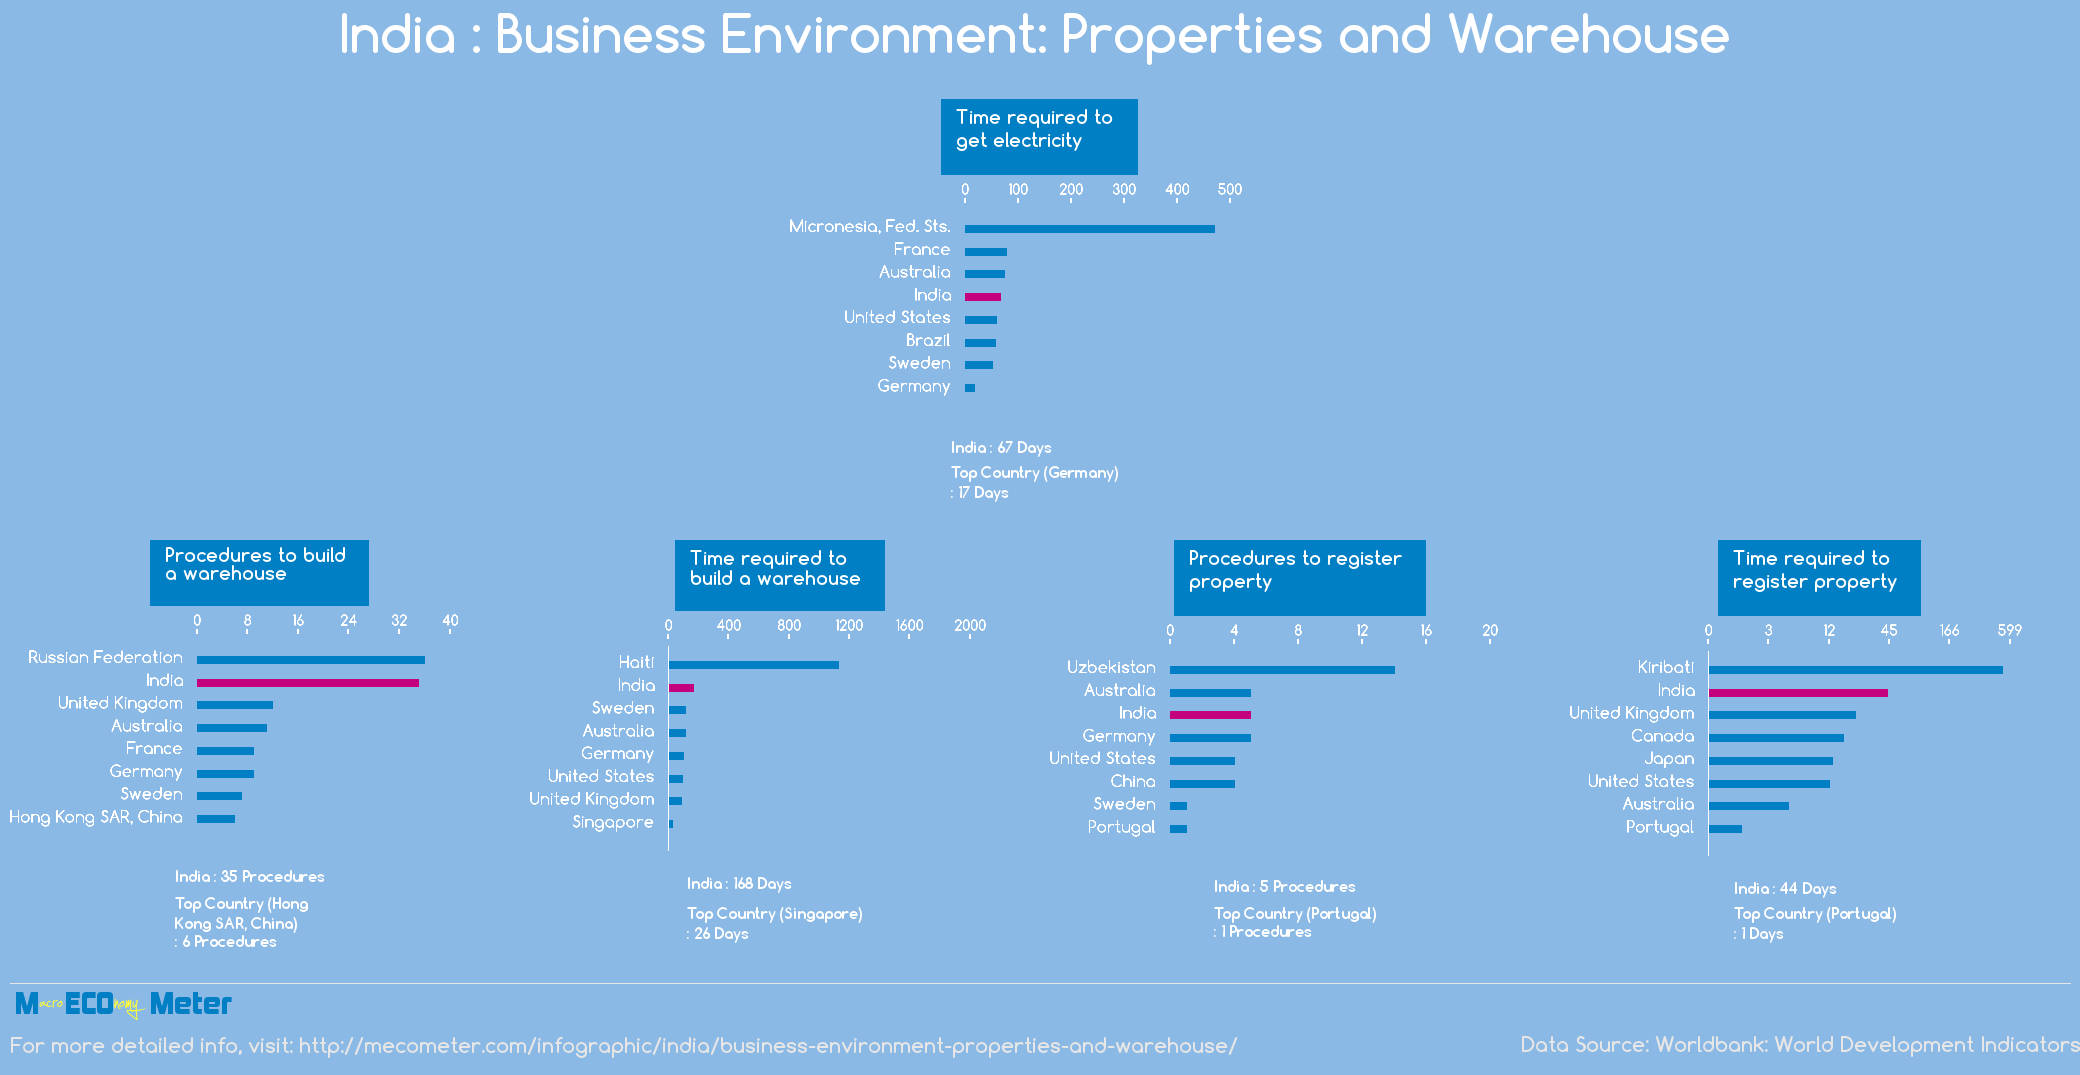 India : Business Environment: Properties and Warehouse